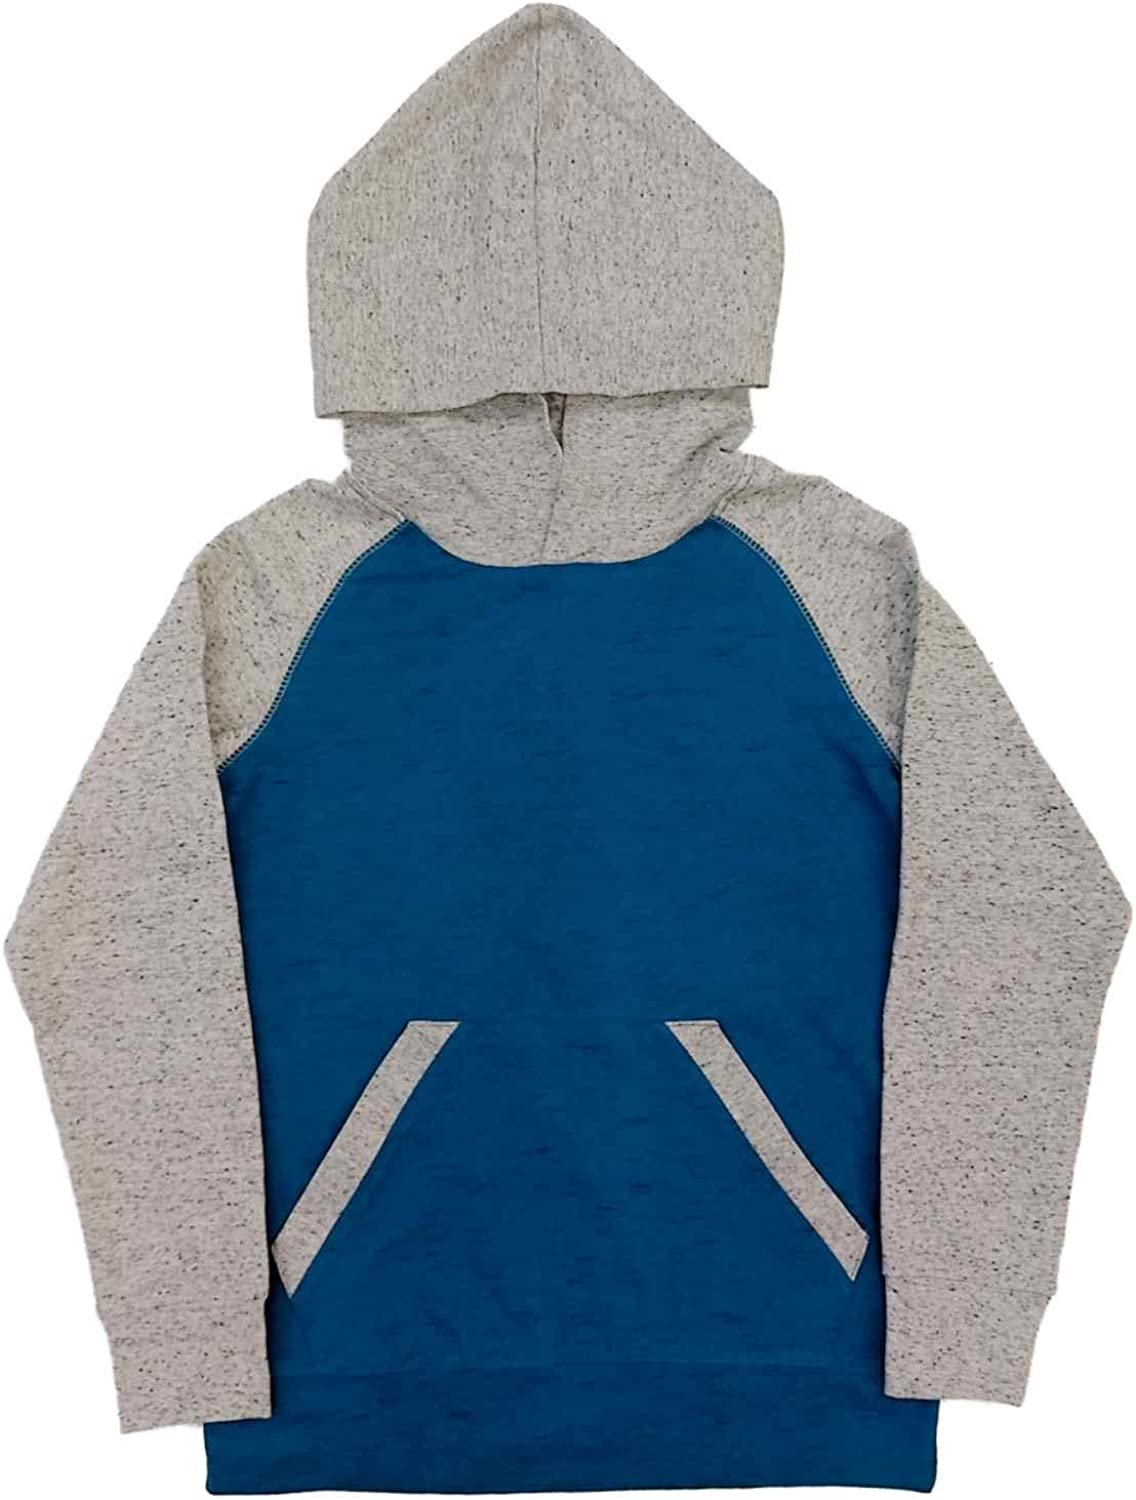 Boys Blue /& Gray Speckle 2-Tone Color-Block Hooded T-Shirt Hoodie Shirt